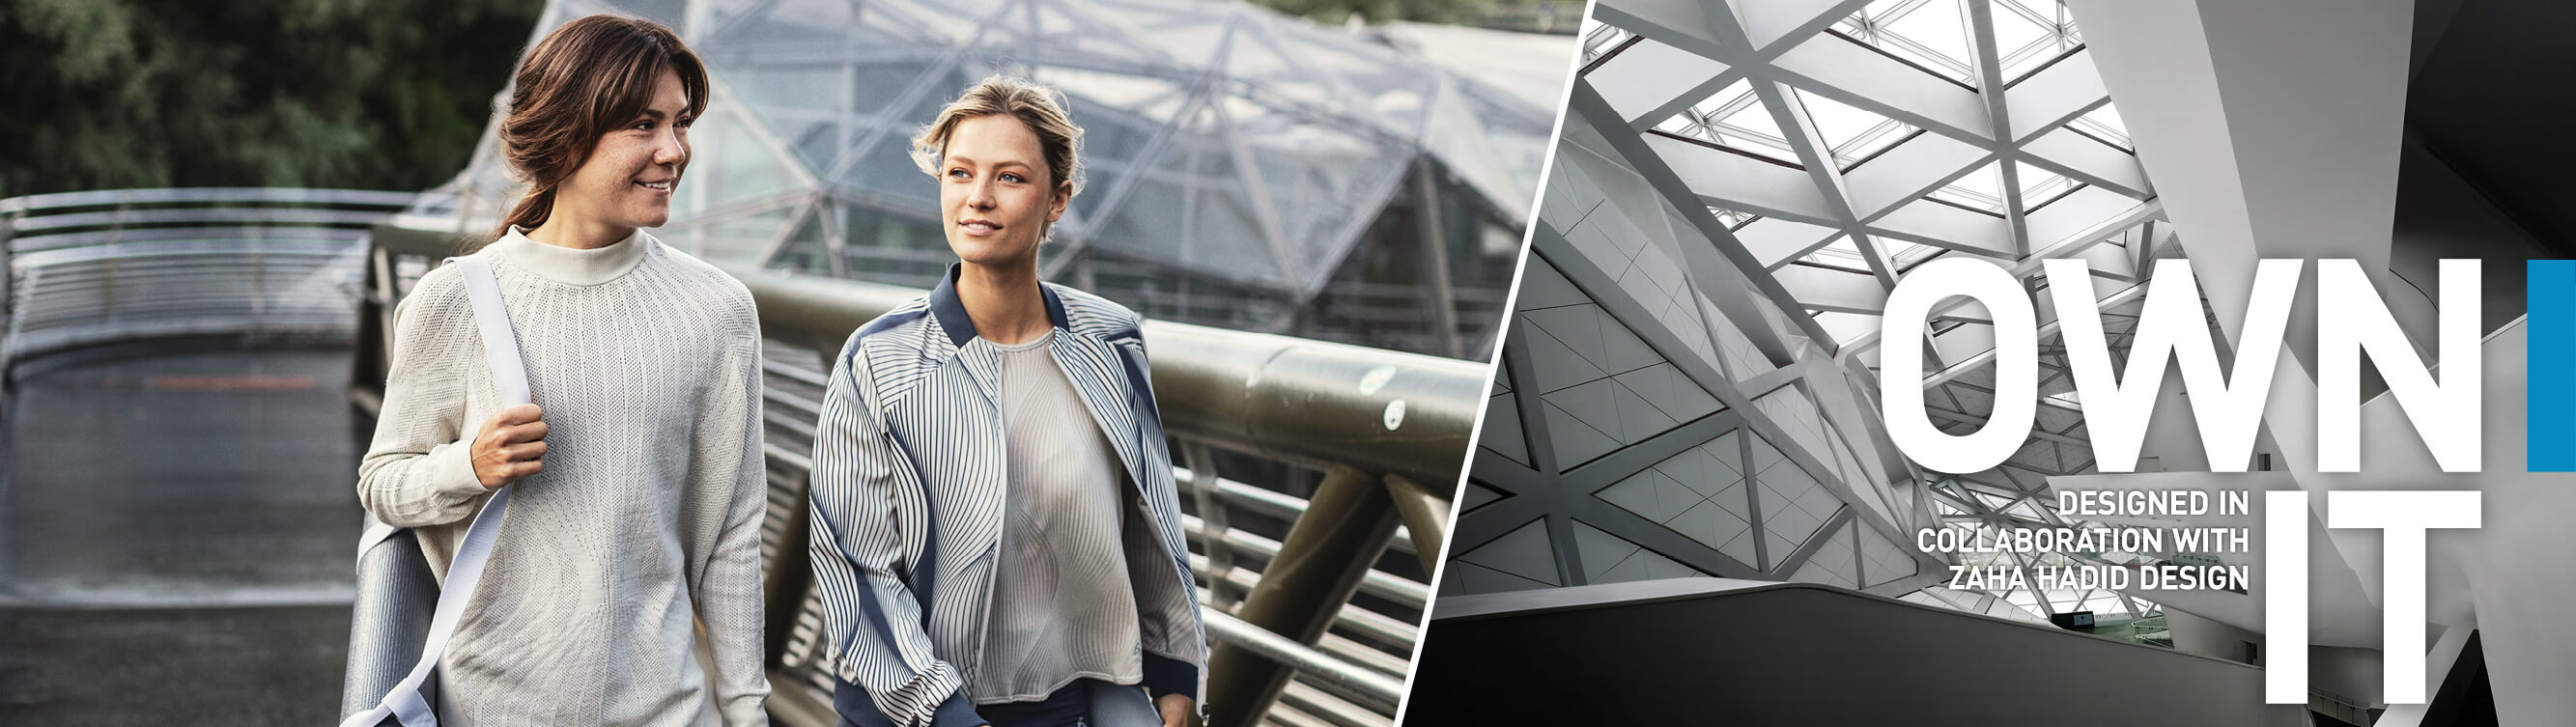 ODLO Women Activewear collection designed in collaboration with Zaha Hadid Design